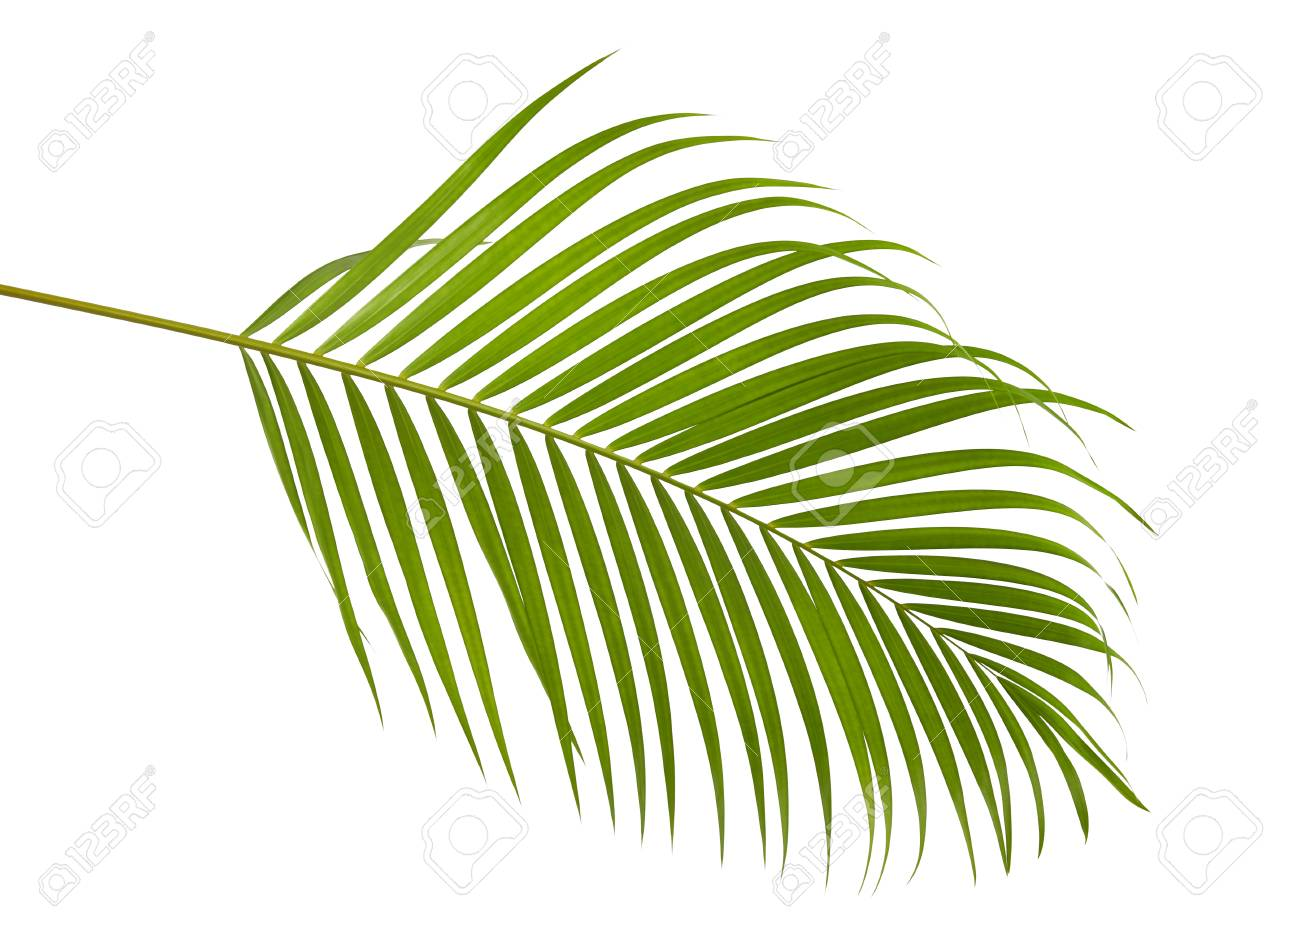 Yellow Palm Leaves Dypsis Lutescens Or Golden Cane Palm Areca Stock Photo Picture And Royalty Free Image Image 95038140